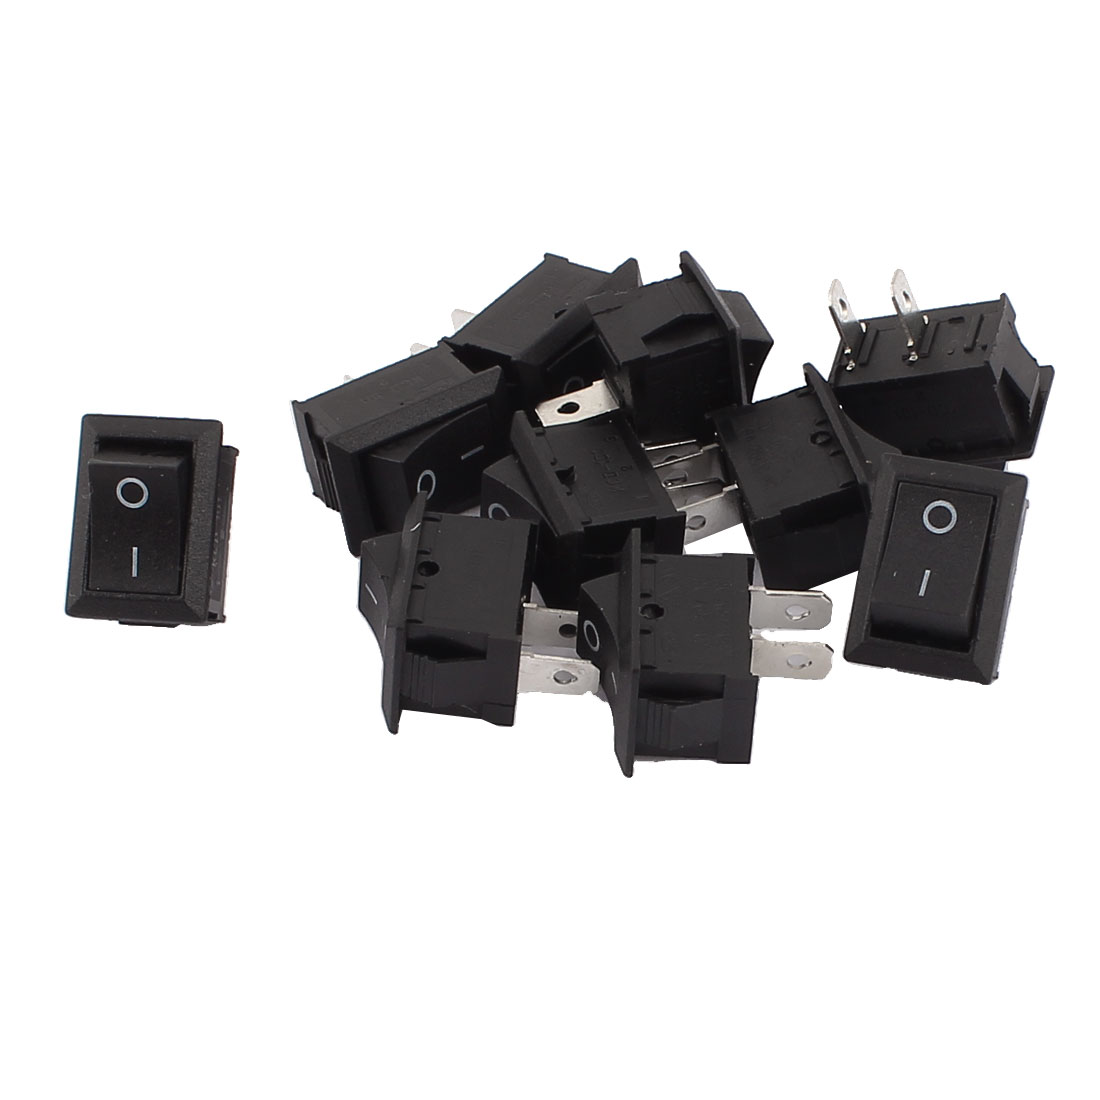 10 Pcs Black 2 Terminal SPST ON-OFF Snap-in Rocker Boat Switch 21x15mm